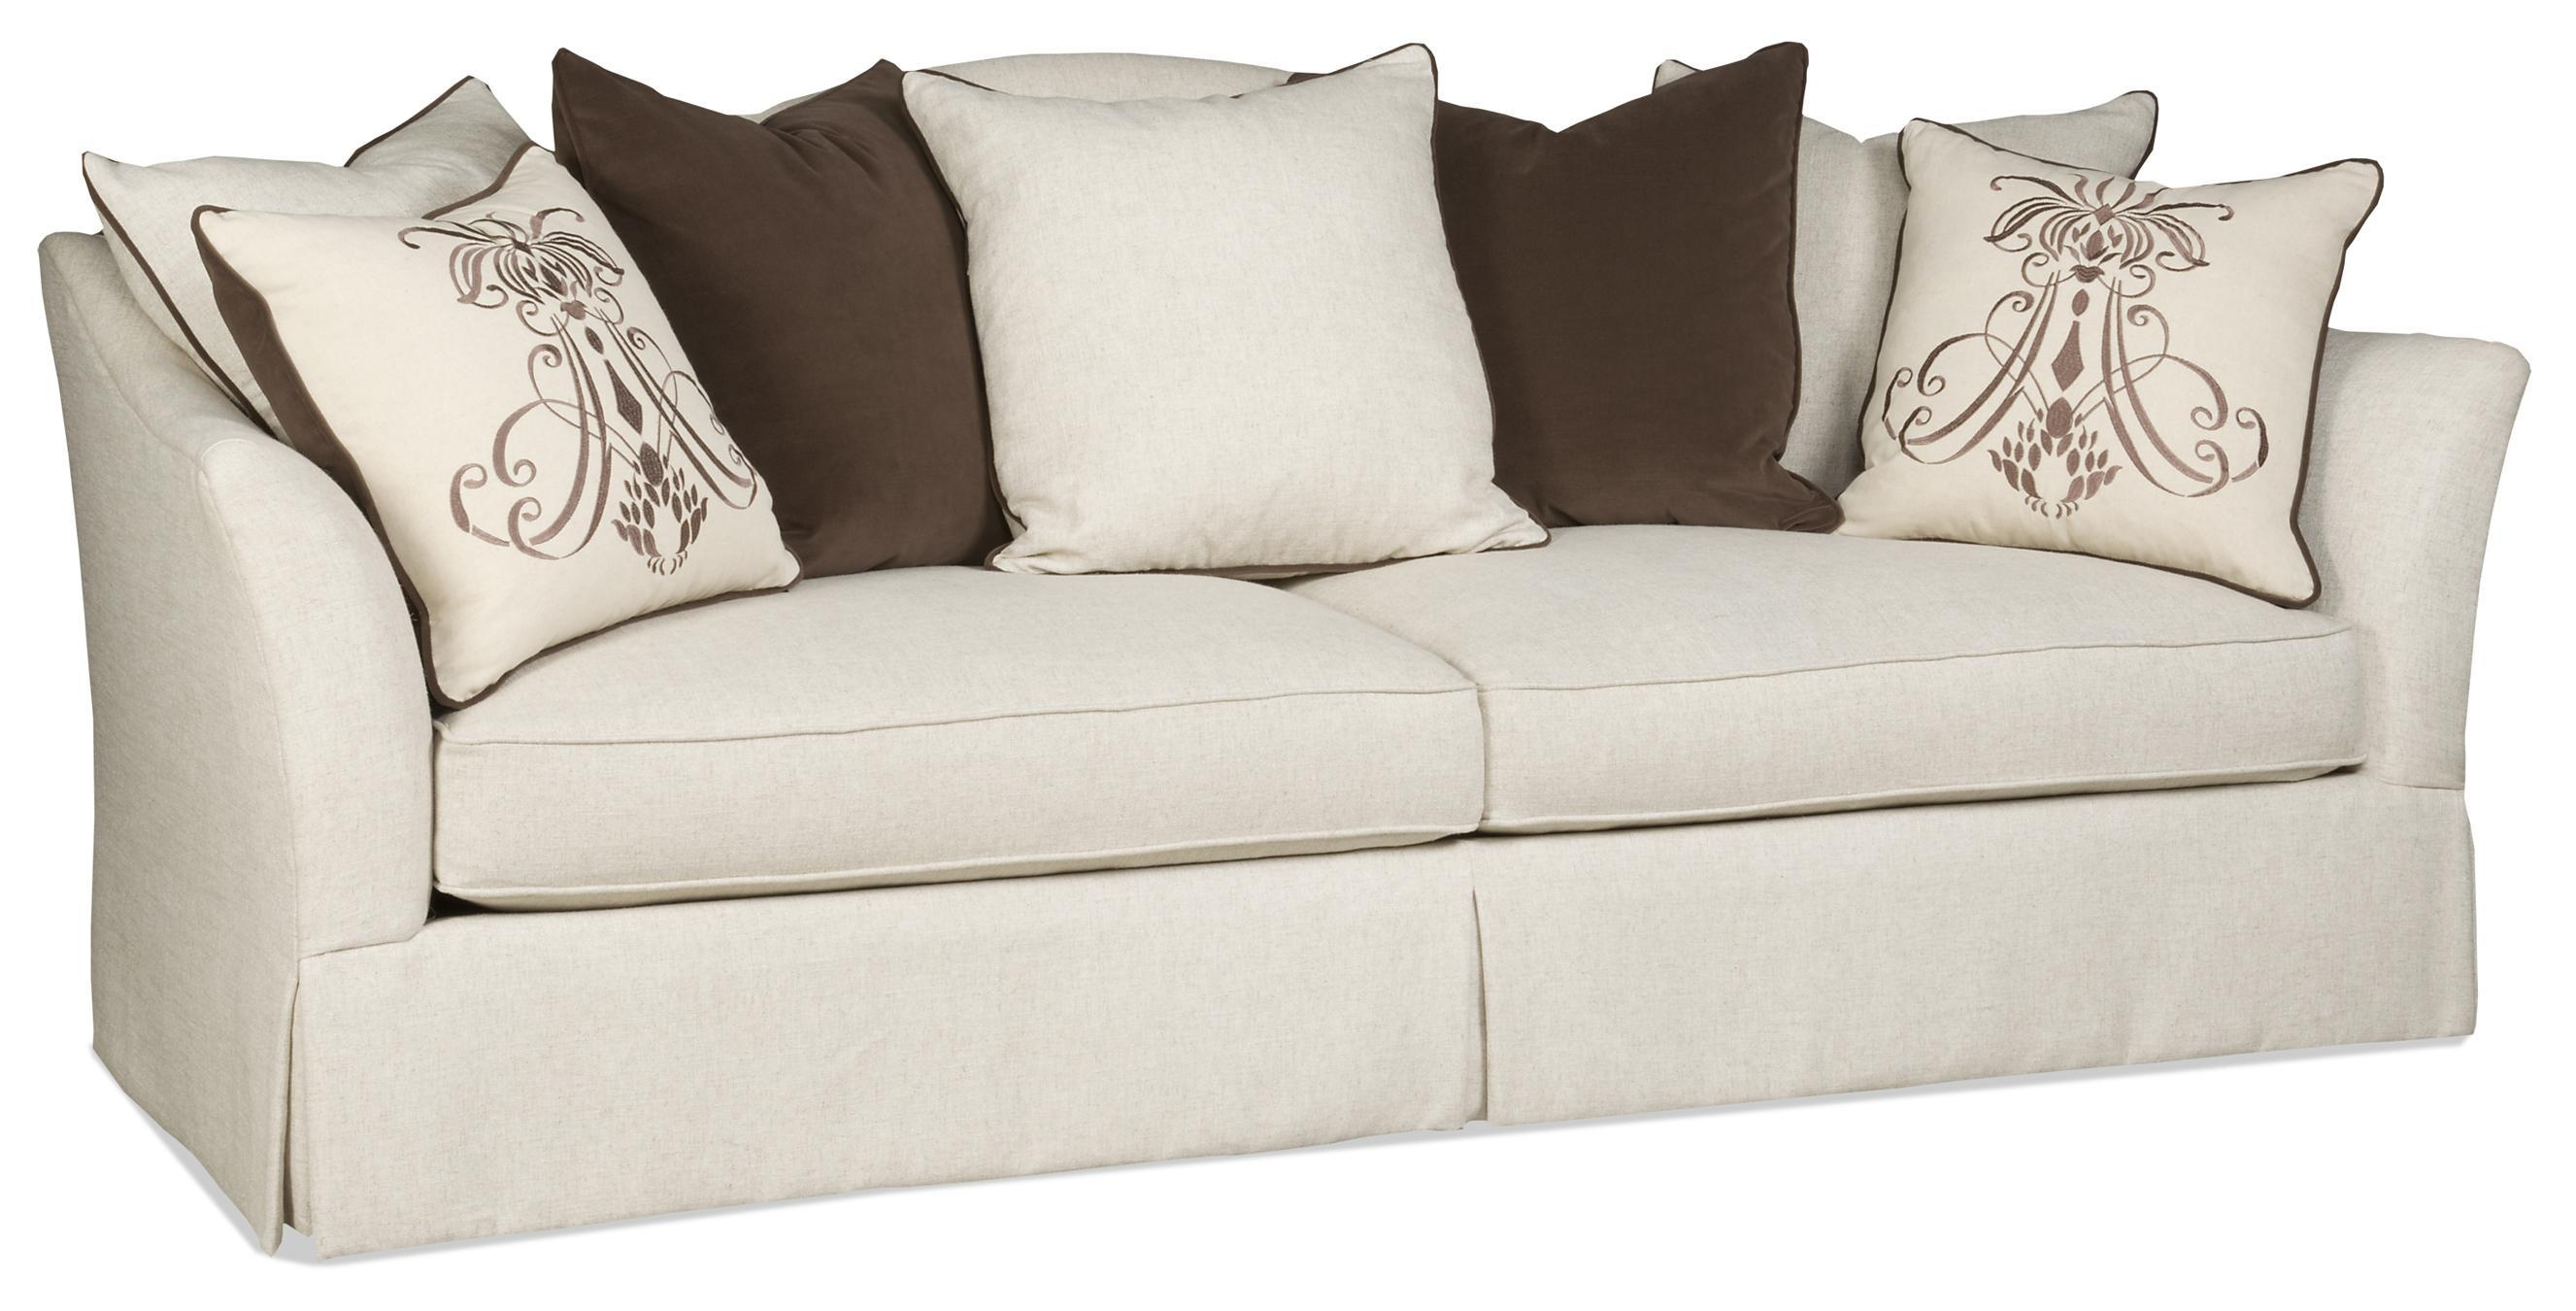 Transitional Scatterback Sofa With Flair Tapered Arms And Skirt Regarding Sam Moore Sofas (Image 19 of 20)